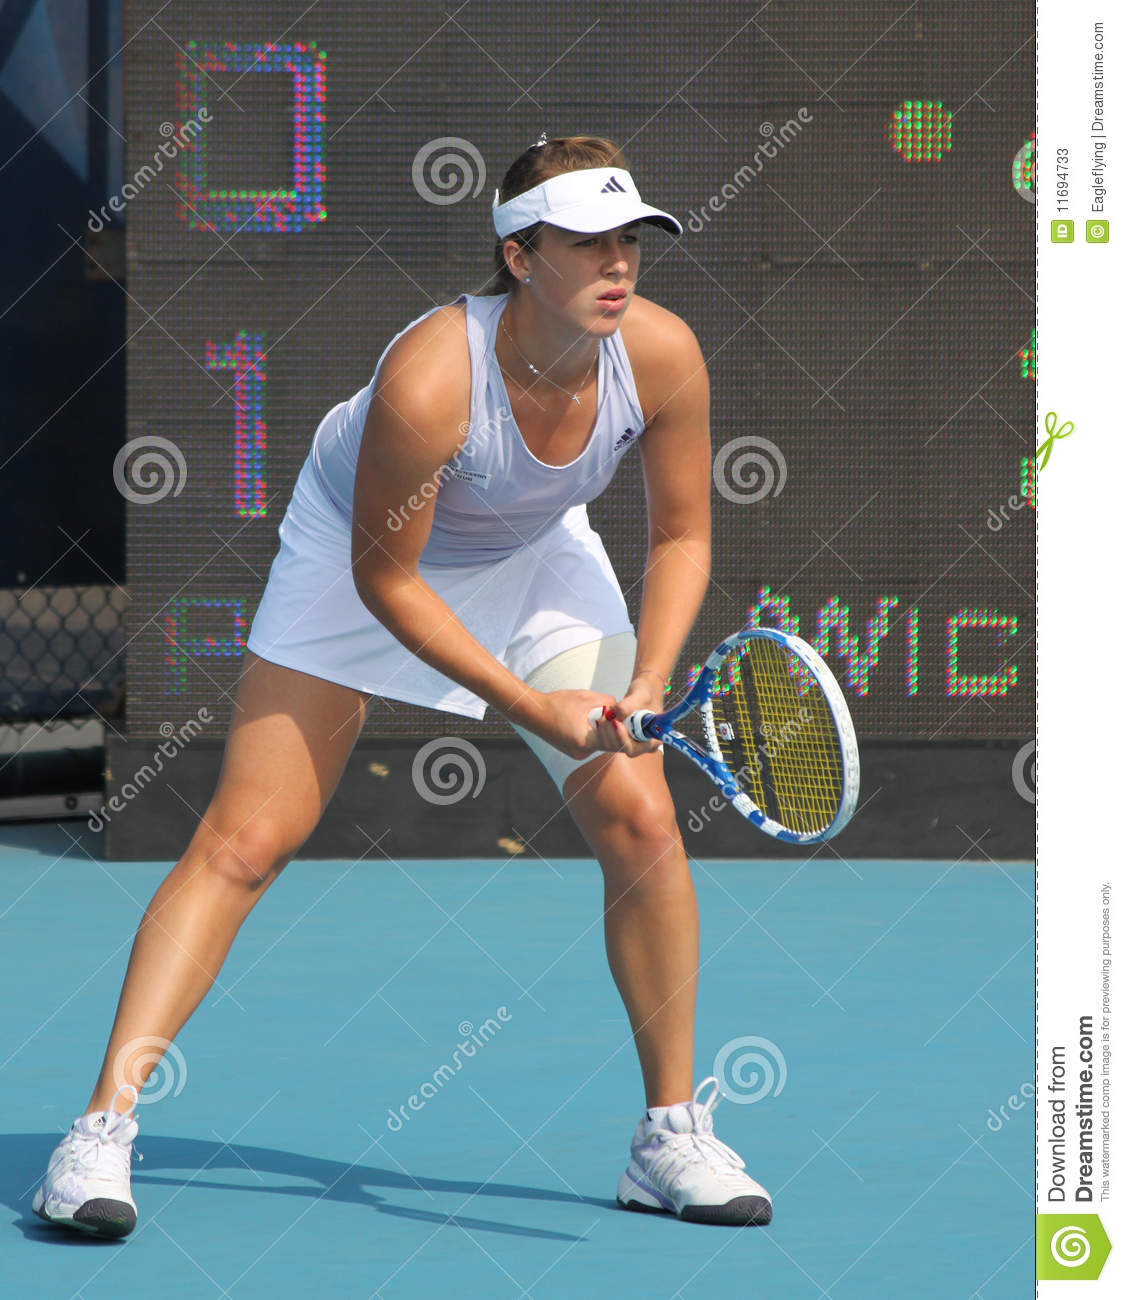 Anastasia Kuznetsova RUS 2009 Anastasia Kuznetsova RUS 2009 new pictures